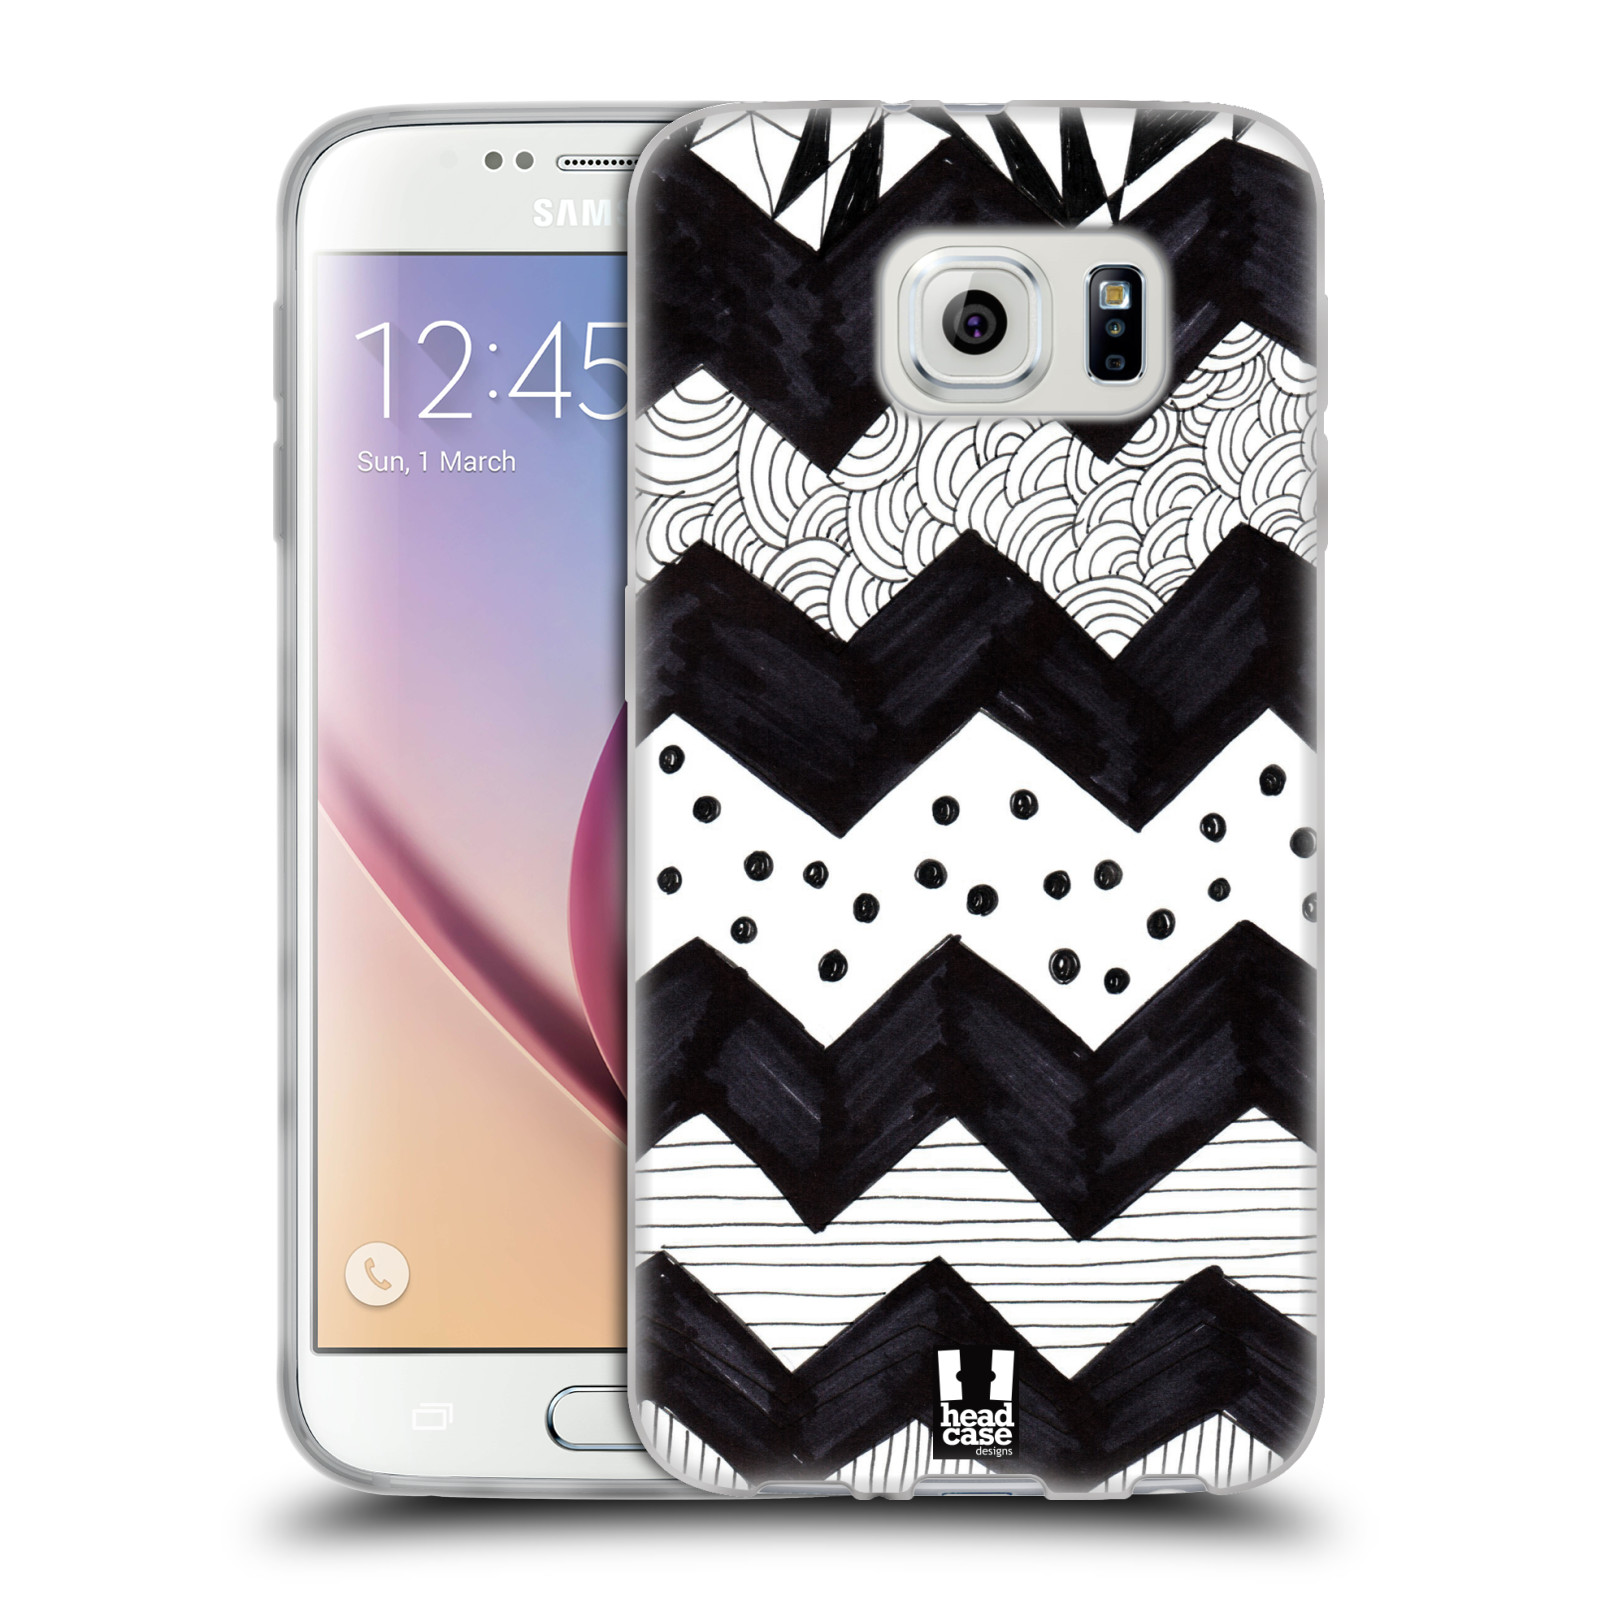 head case black and white doodle patterns gel case for samsung galaxy s6 duos ebay. Black Bedroom Furniture Sets. Home Design Ideas